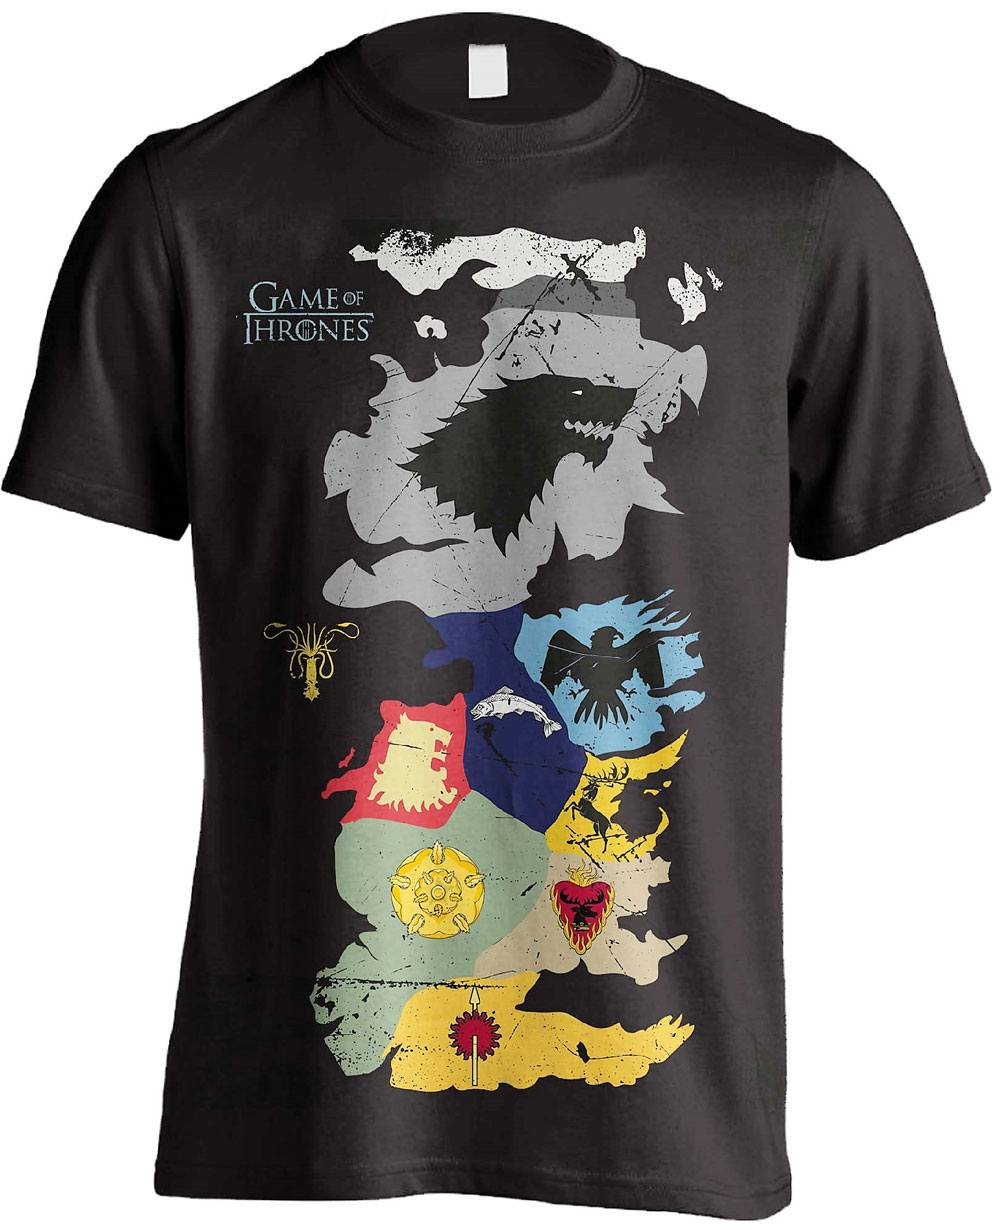 Game of Thrones T-Shirt Westeros Sigils Map Size L